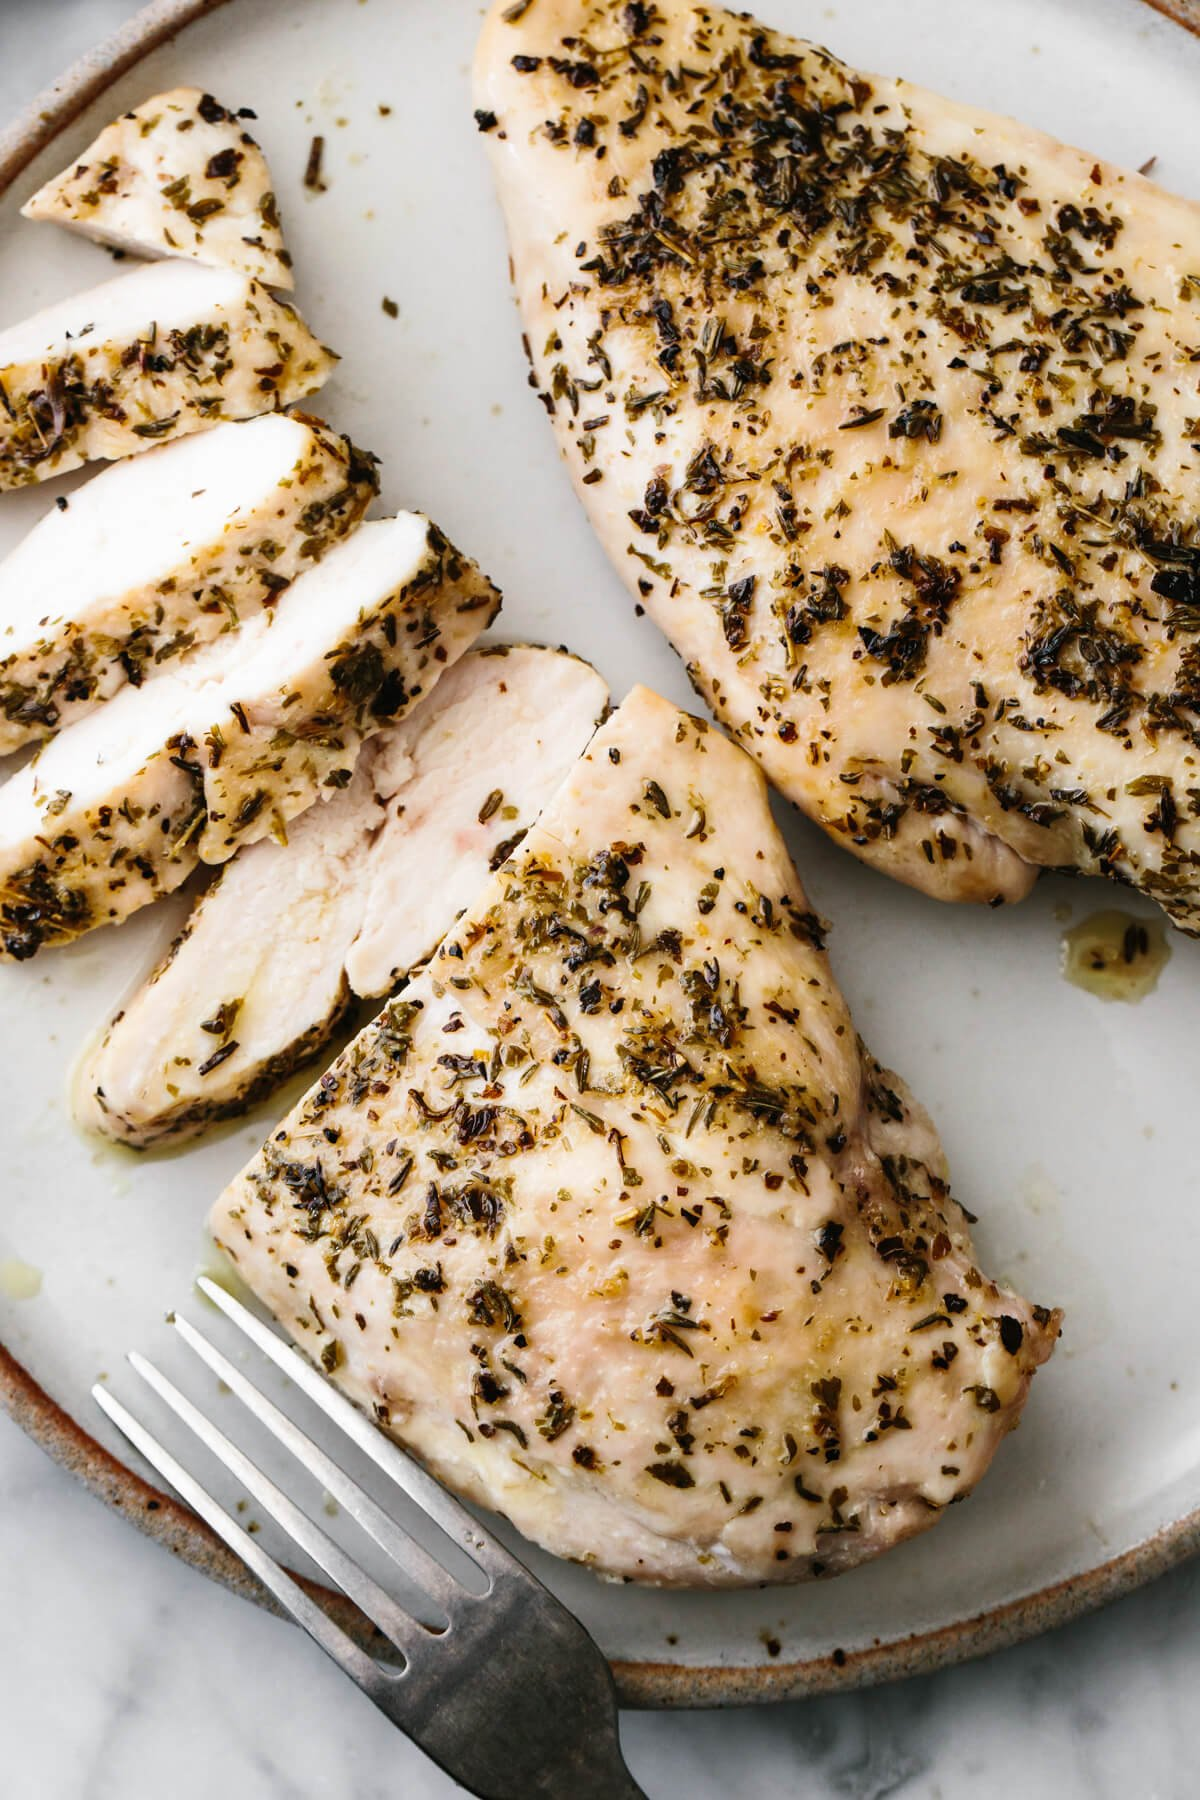 Herb baked chicken breast sliced into pieces on a plate.